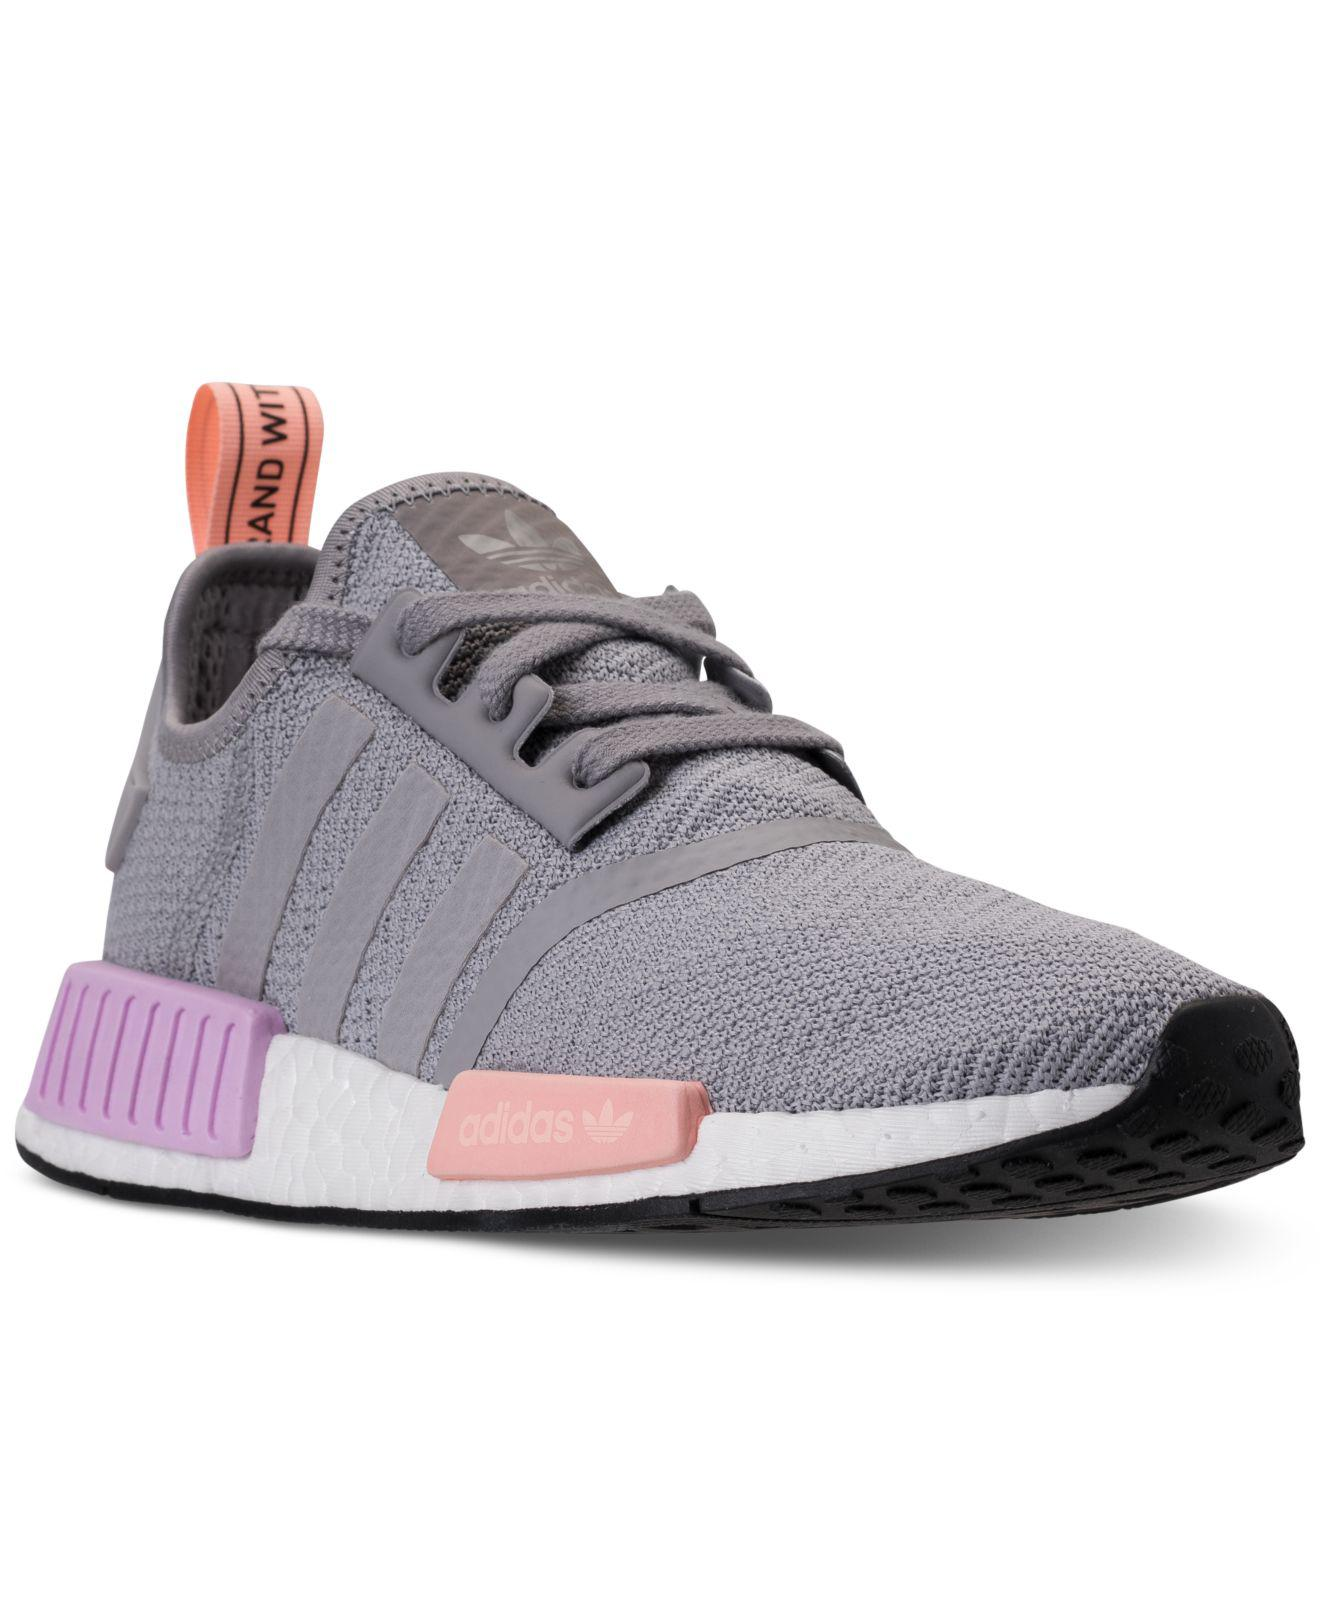 adidas nmd womens grey and pink The